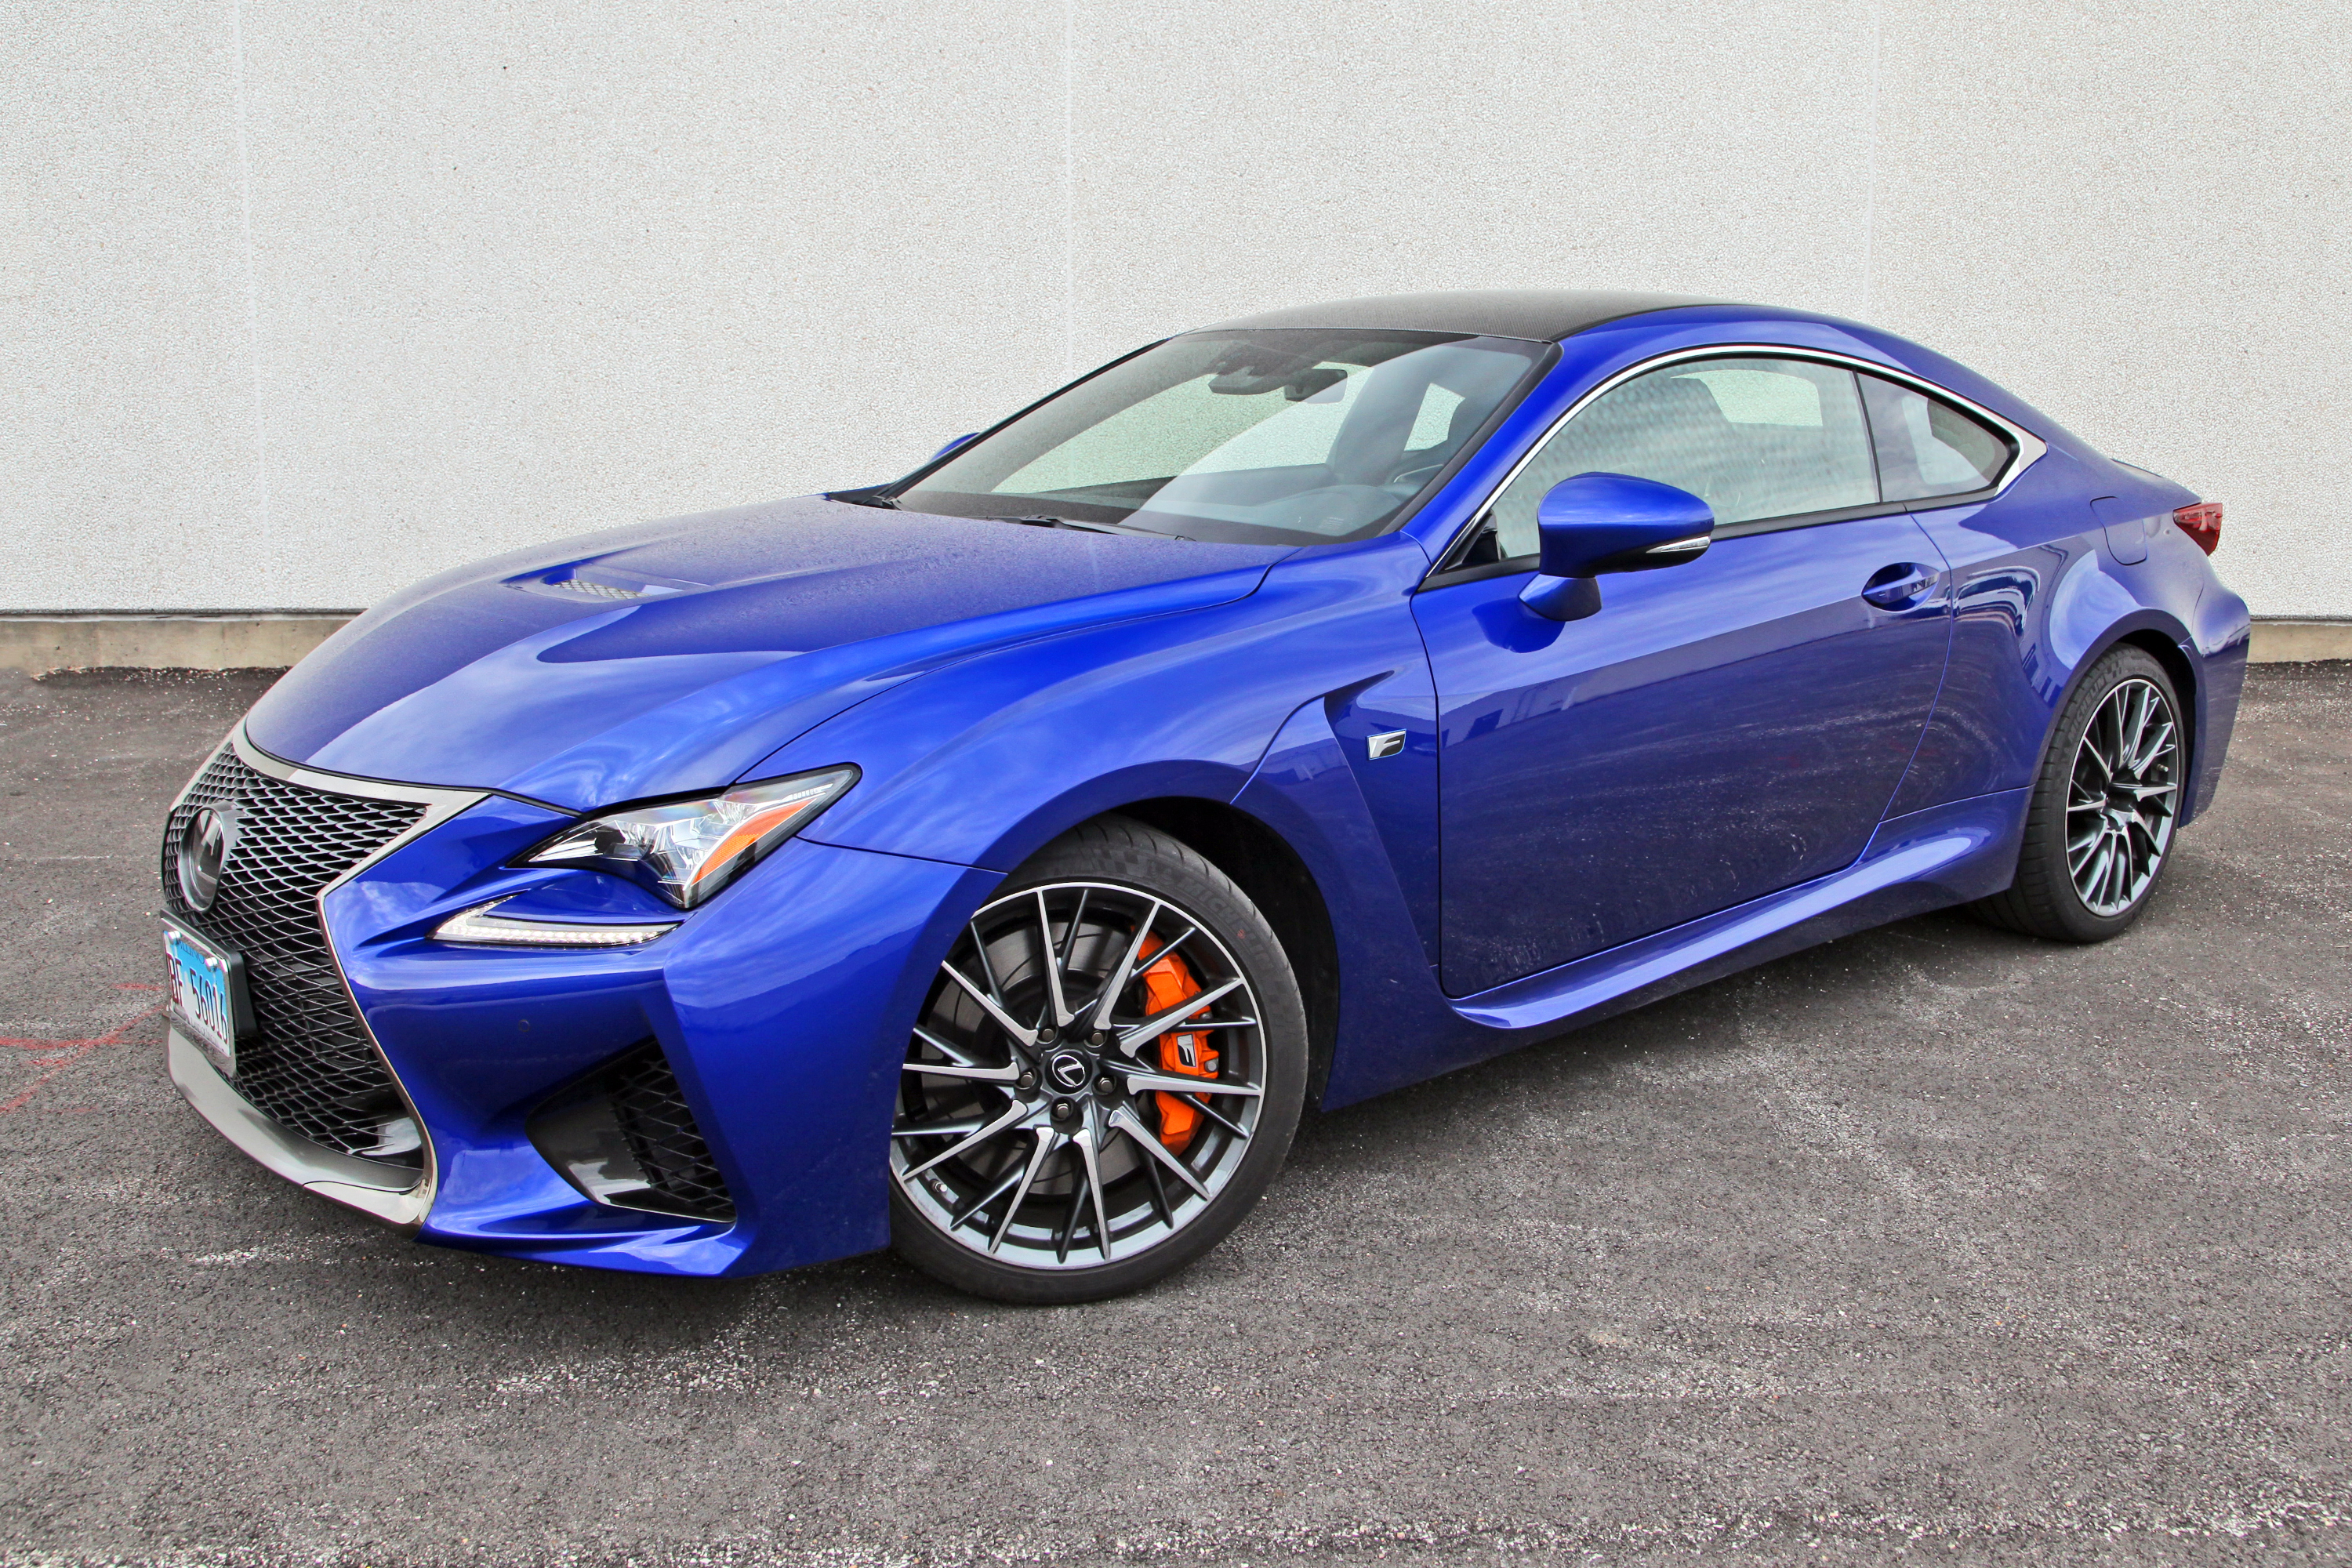 Used Lexus Is 350 >> Quick Spin: 2019 Lexus RC F | The Daily Drive | Consumer Guide® The Daily Drive | Consumer Guide®